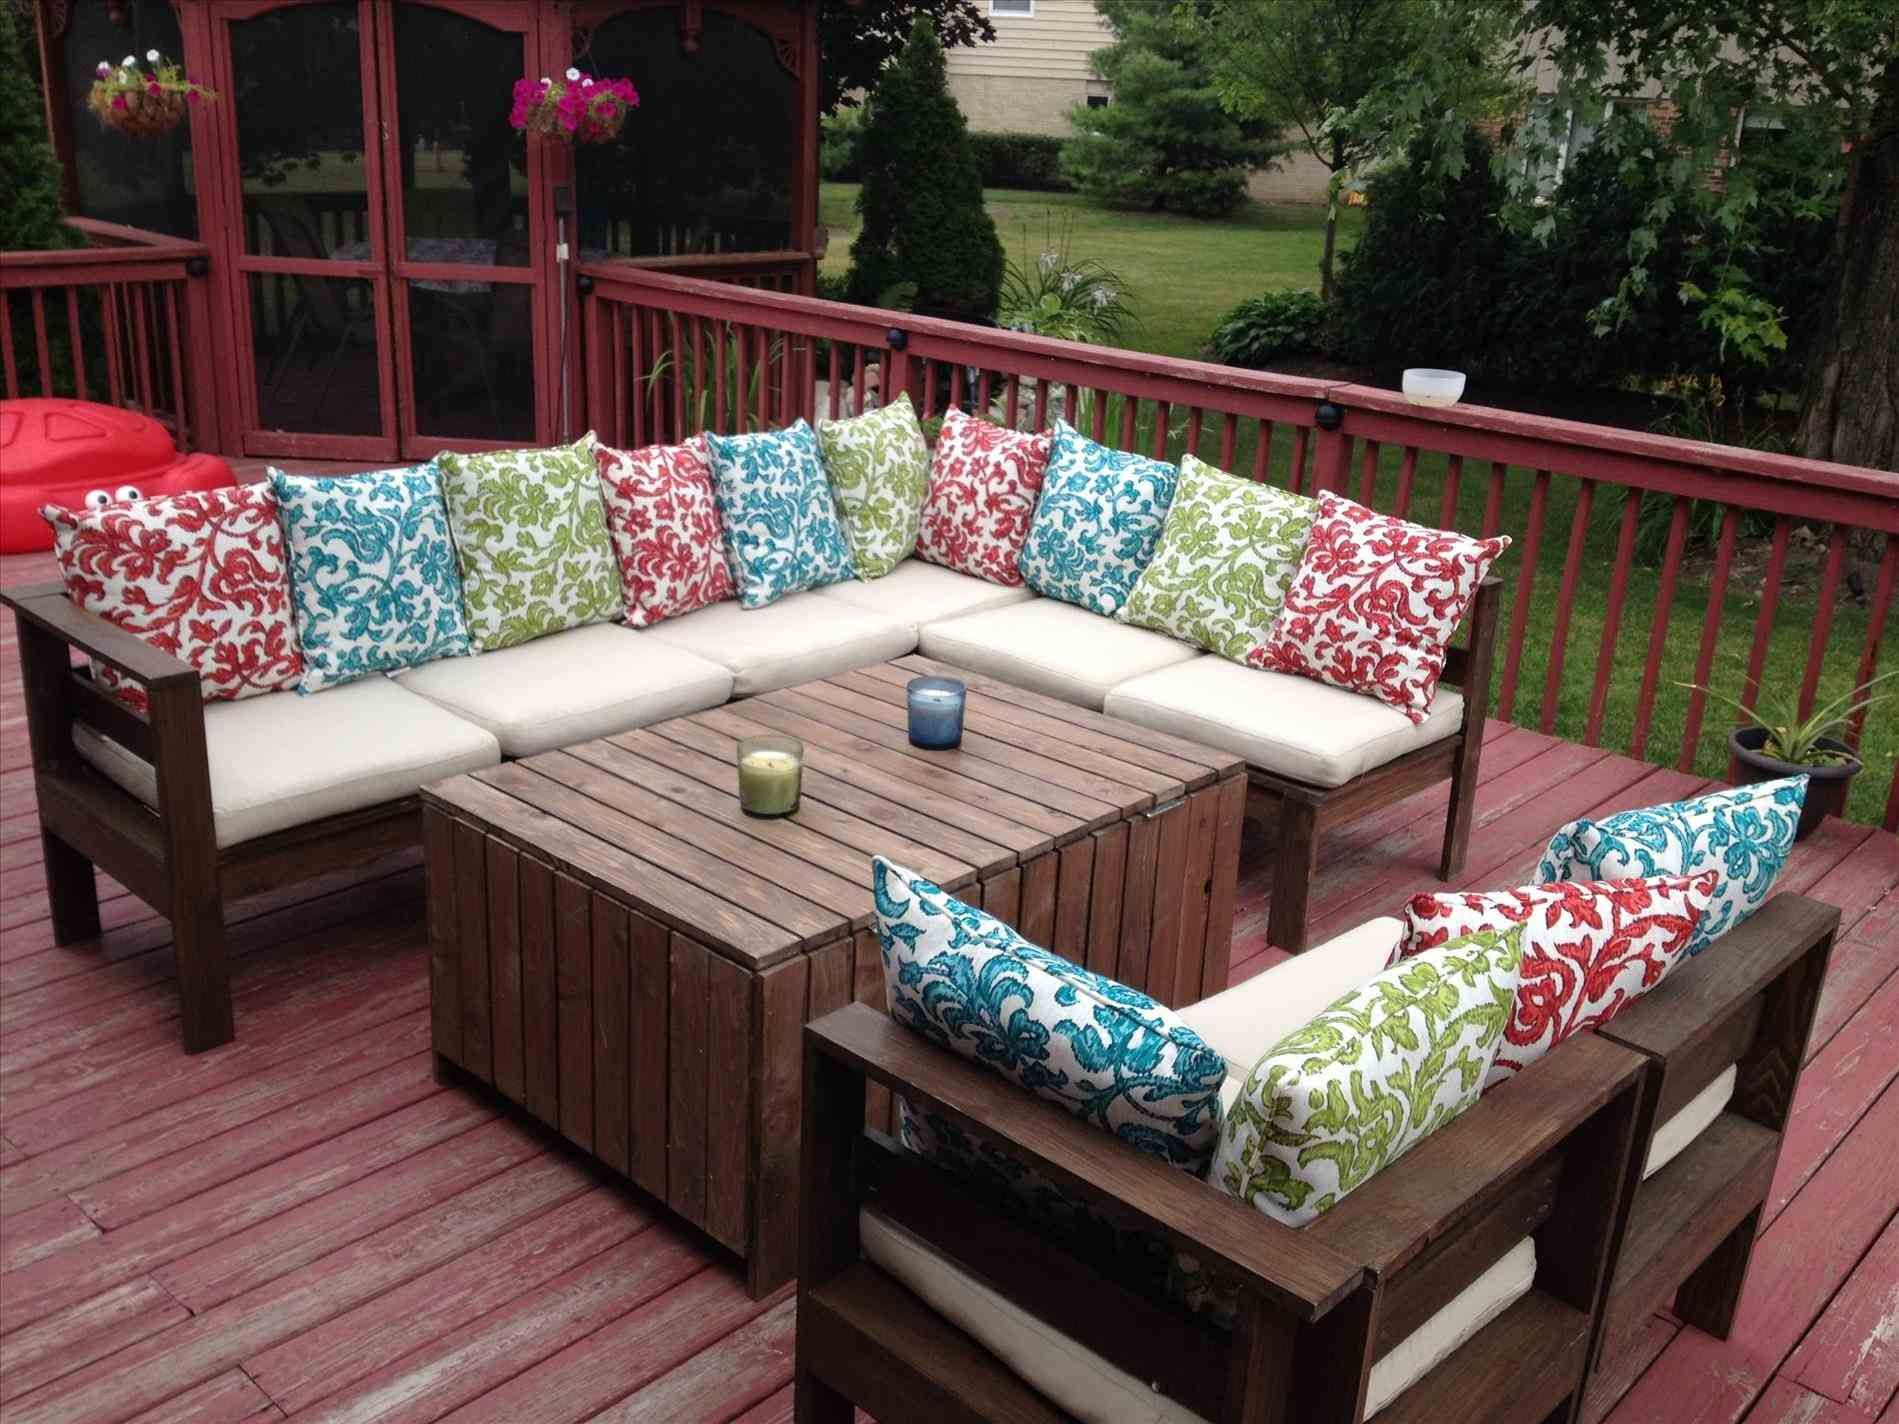 Diy Recycled Wood Pallet Patio Sofa Ideas Pallet Ideas Pinterest